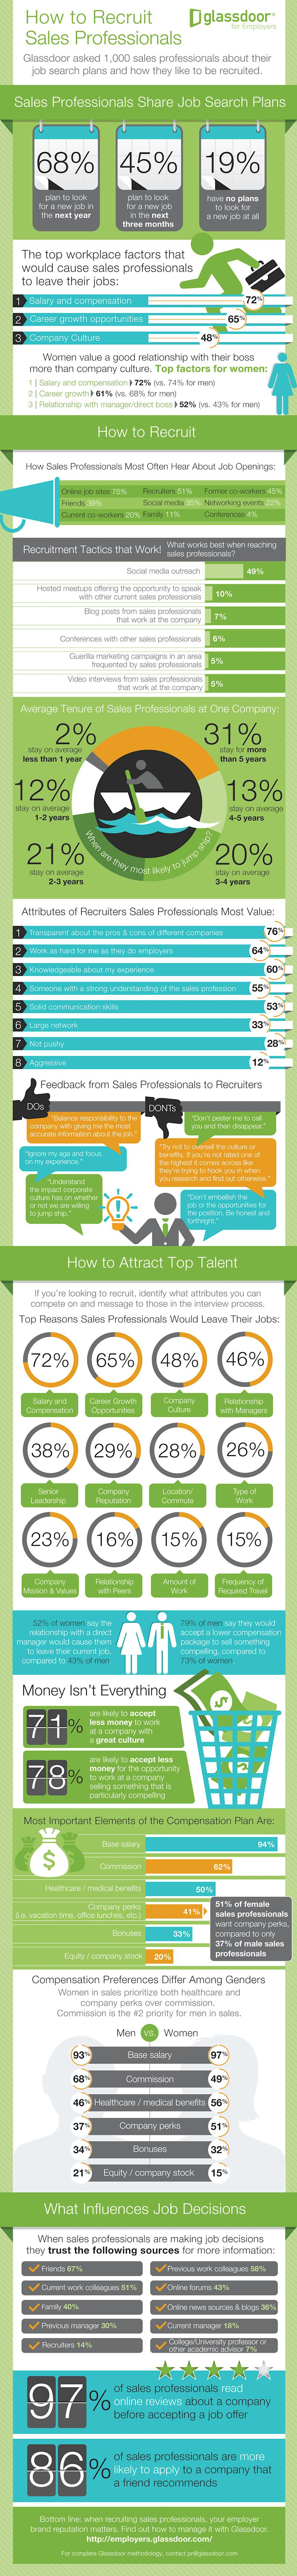 How to Recruit and Retain an Impassioned Sales Staff (Infographic)